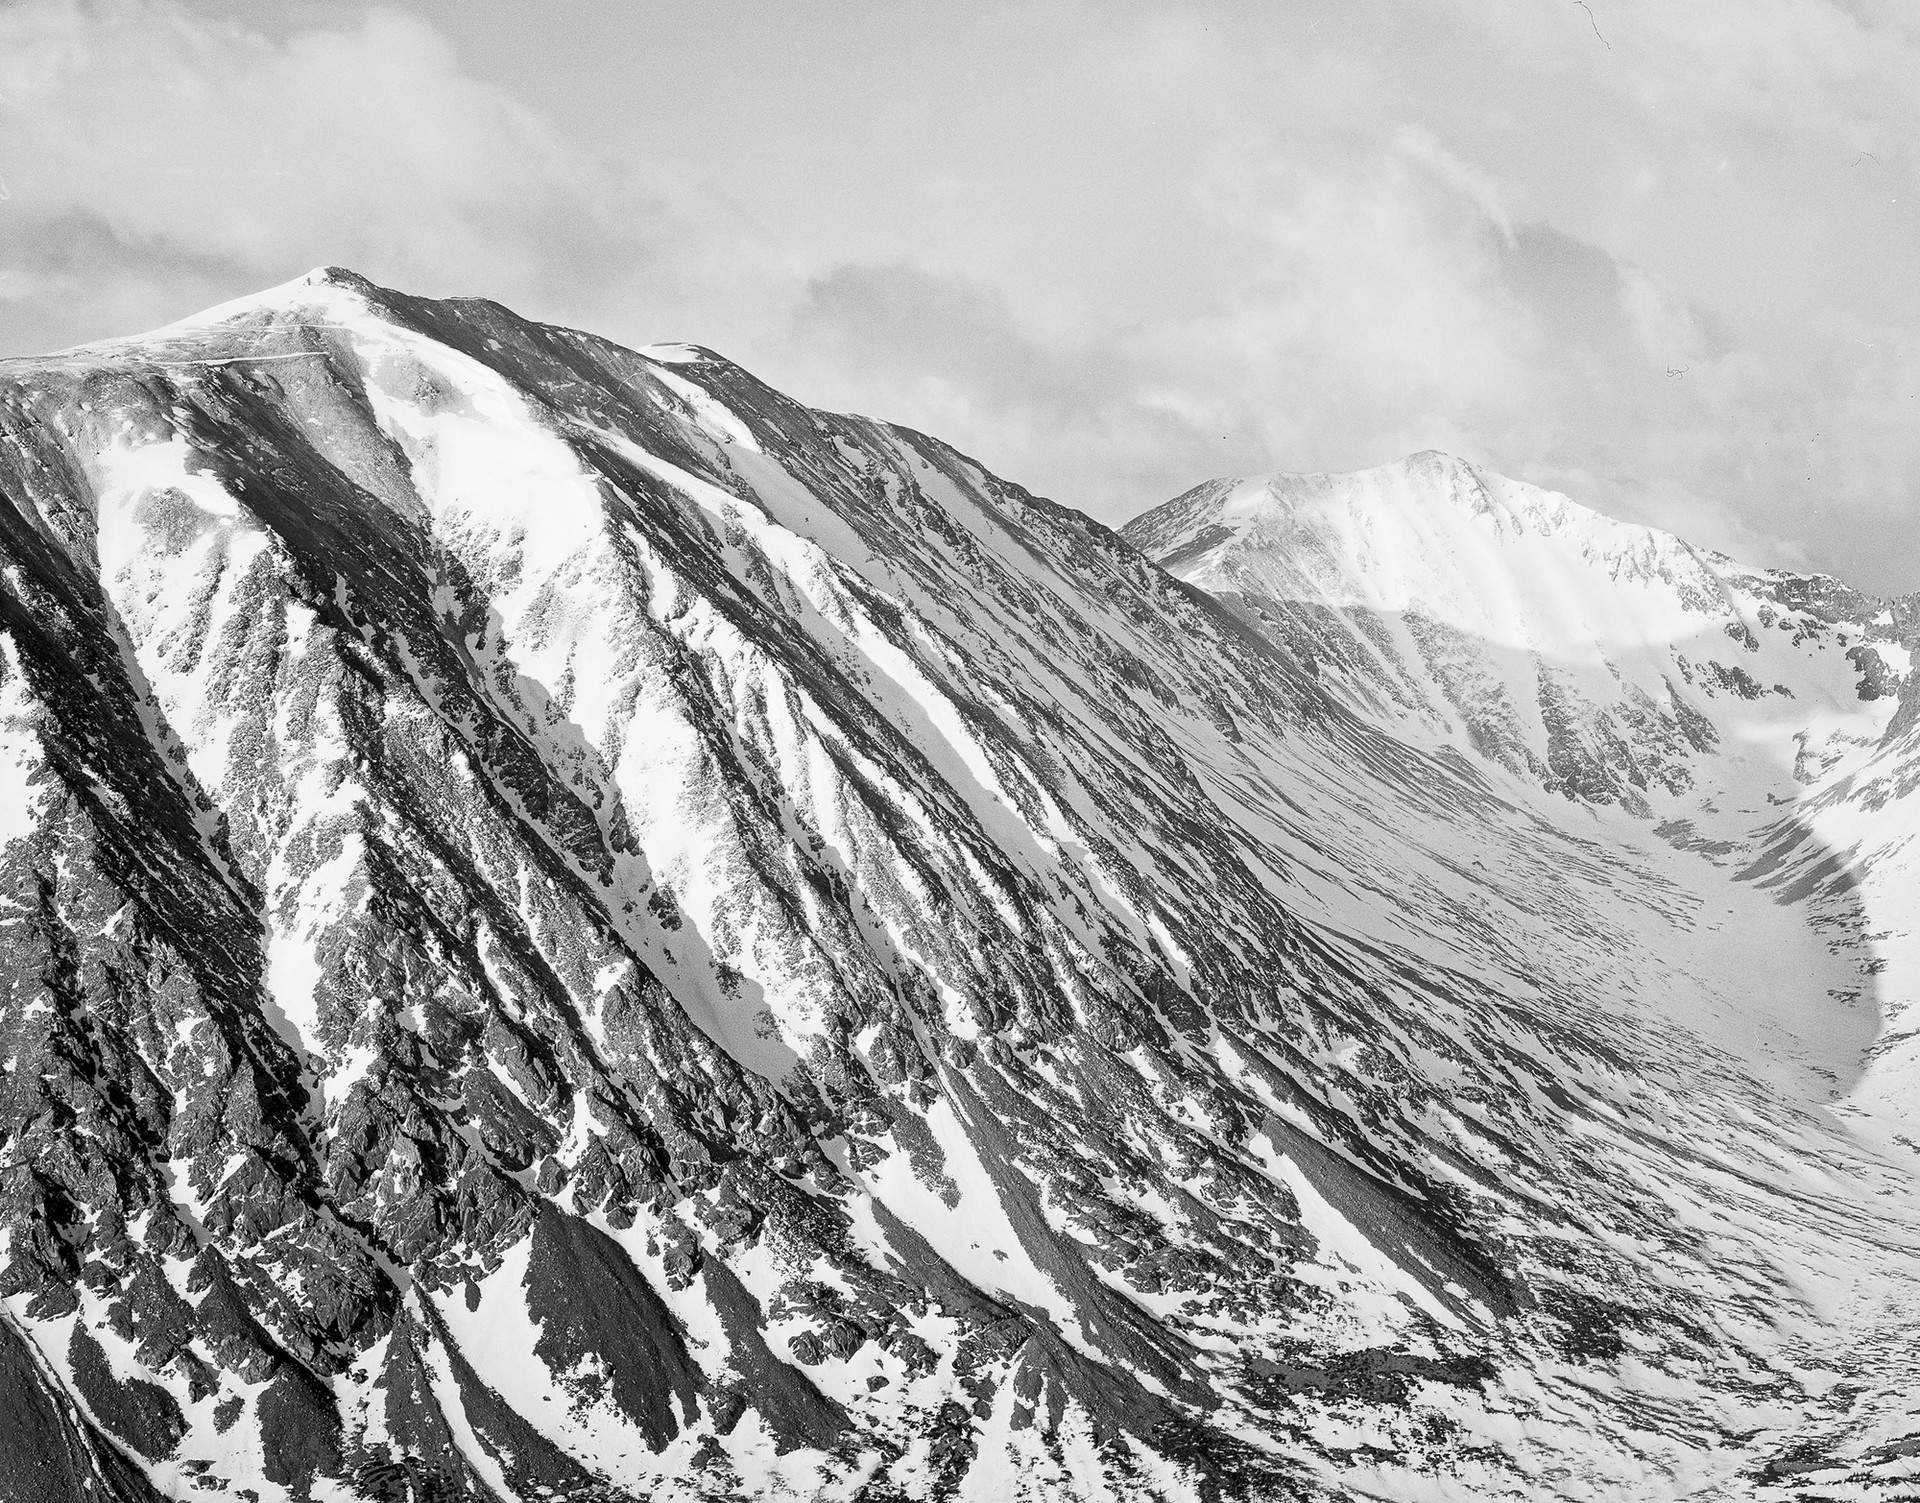 Mount Lincoln and Mount Democrat